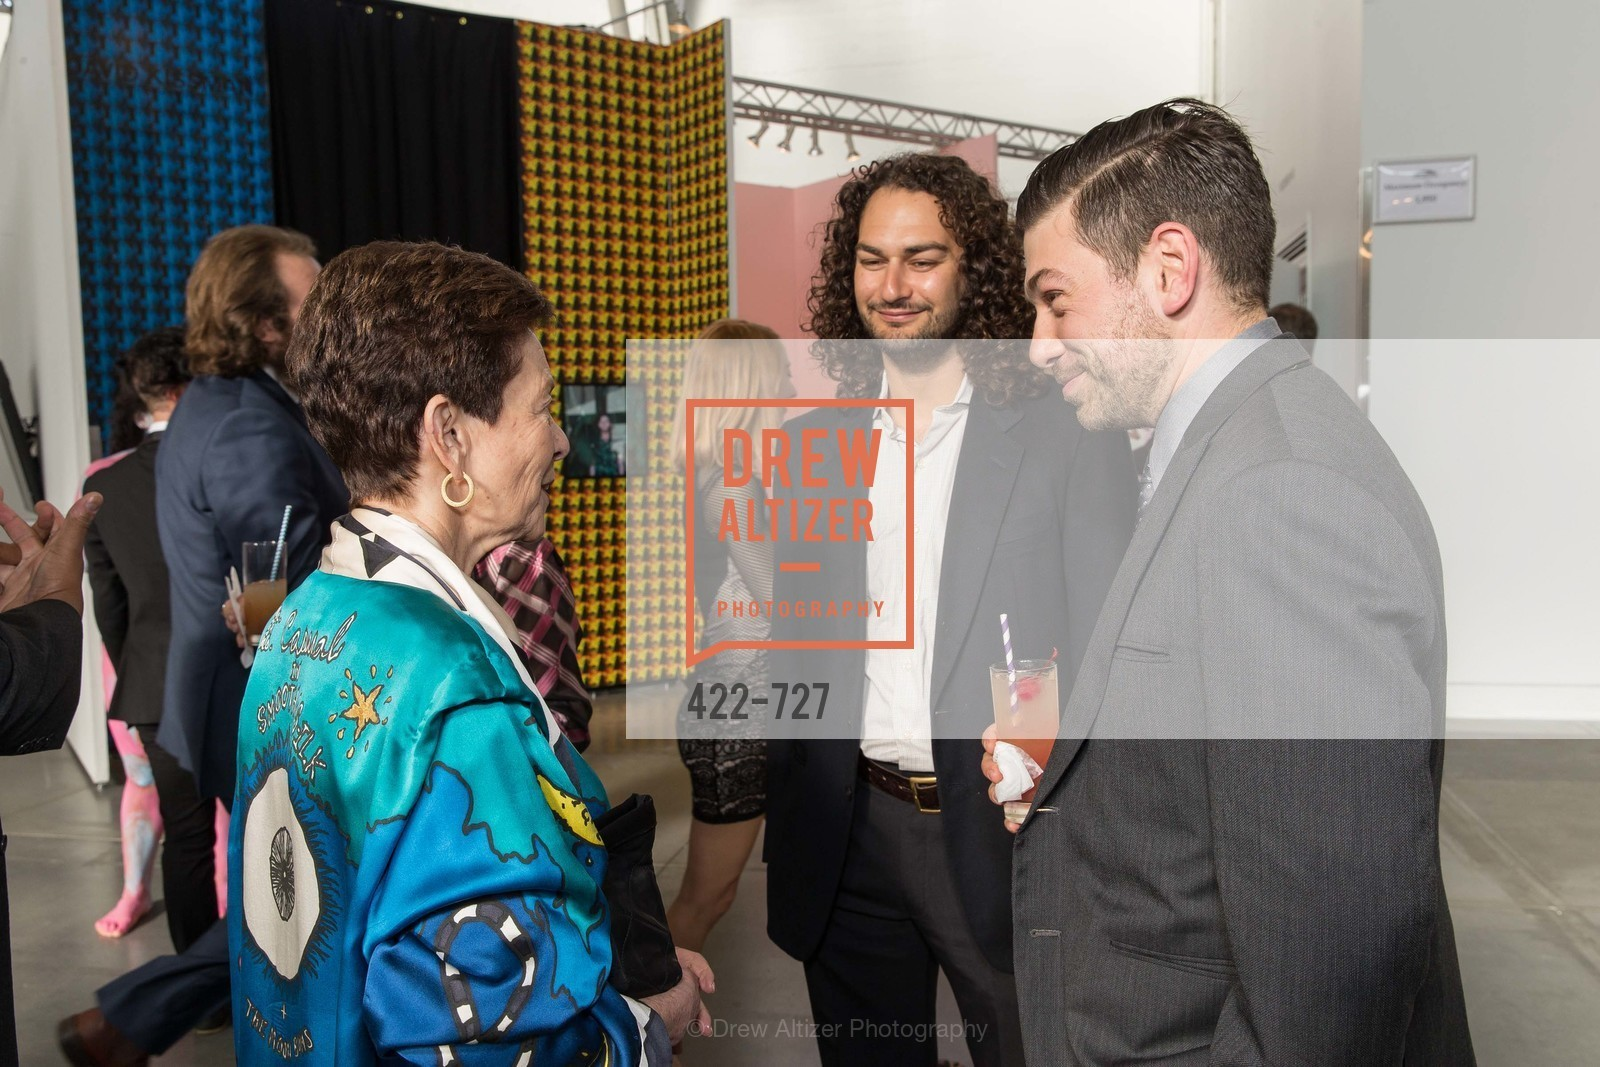 Cissie Swig, Adam Swig, SAN FRANCISCO ART INSTITUTE Gala Honoring Art Visionary and Advocate ROSELYNE CHROMAN SWIG, US, May 14th, 2015,Drew Altizer, Drew Altizer Photography, full-service agency, private events, San Francisco photographer, photographer california